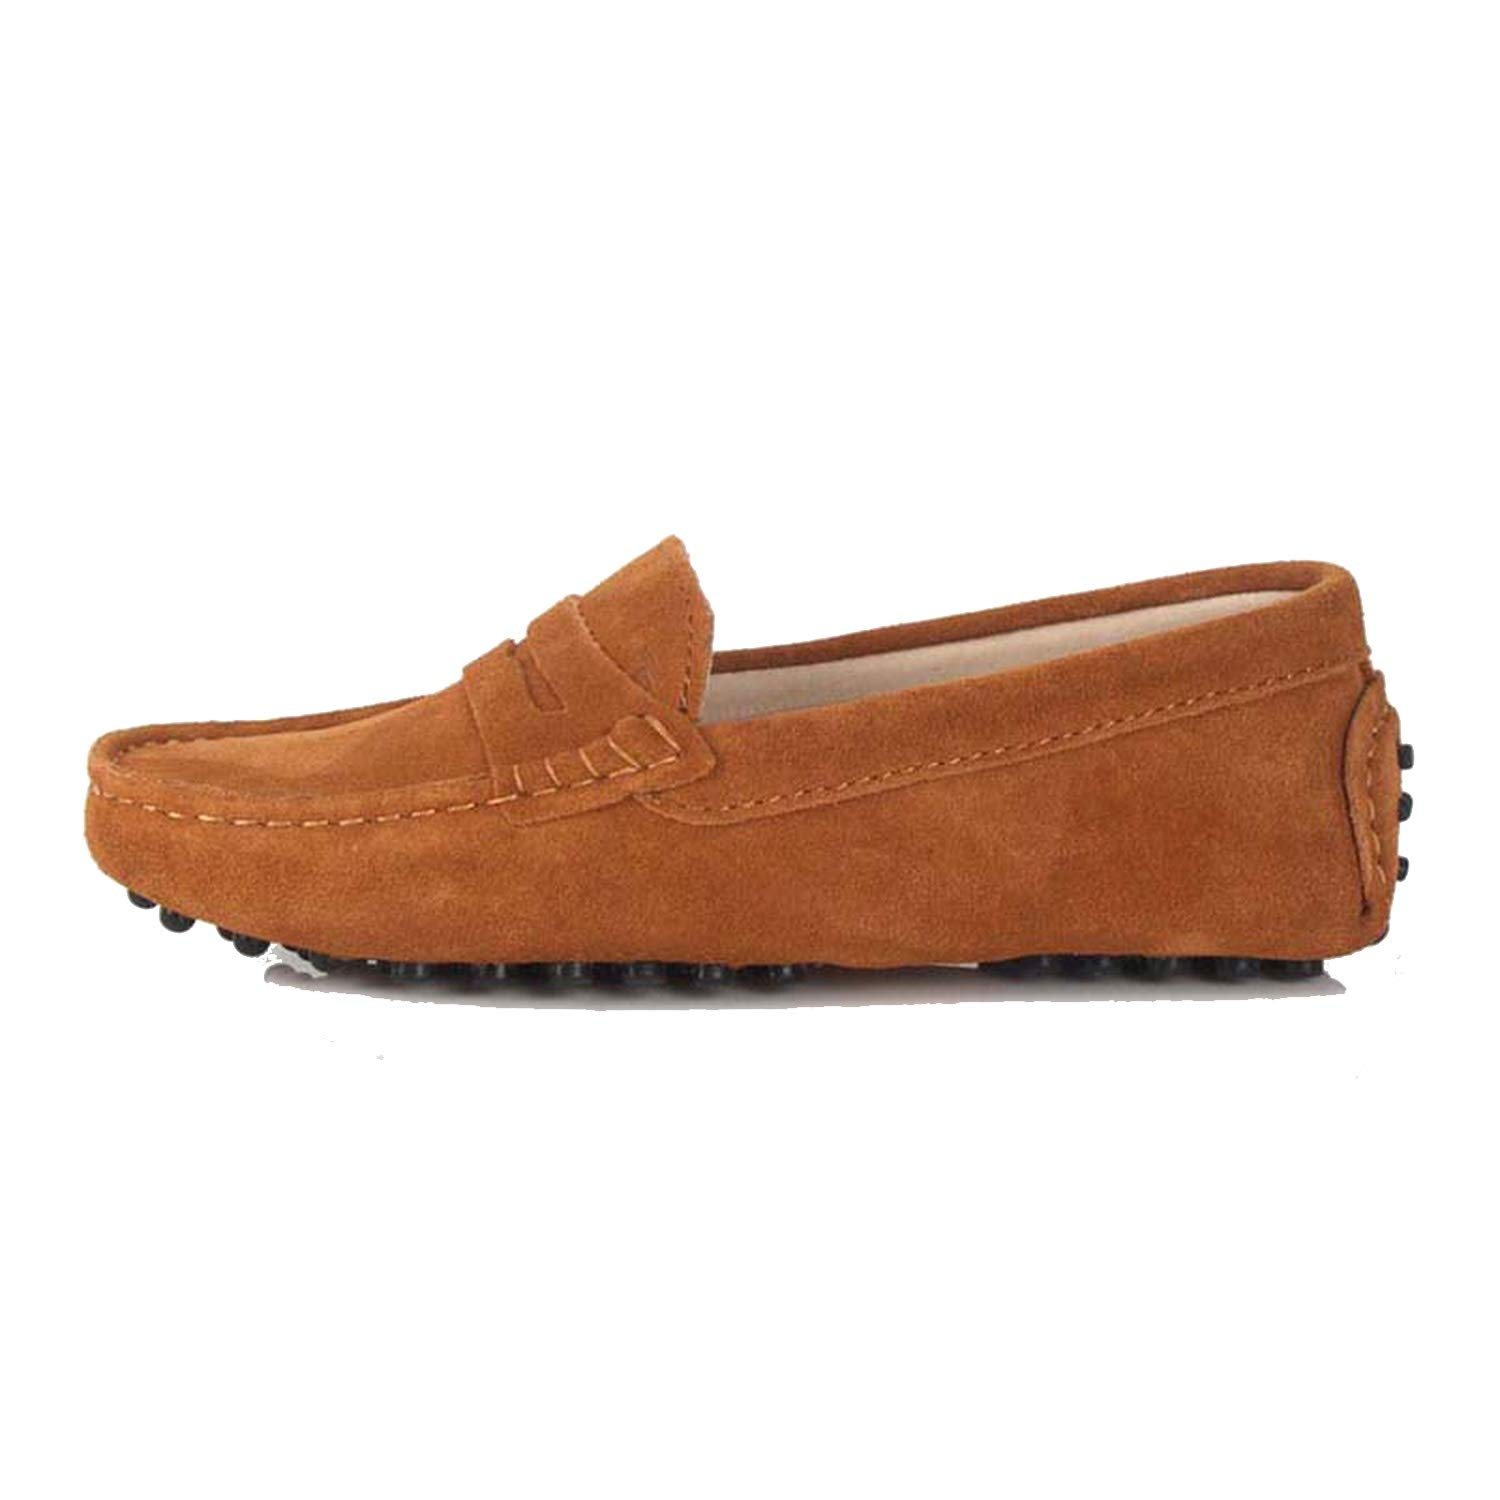 Chestnut Women's Woman shoes Flats Casual Loafers Soft Slip On Moccasins Lady Driving shoes